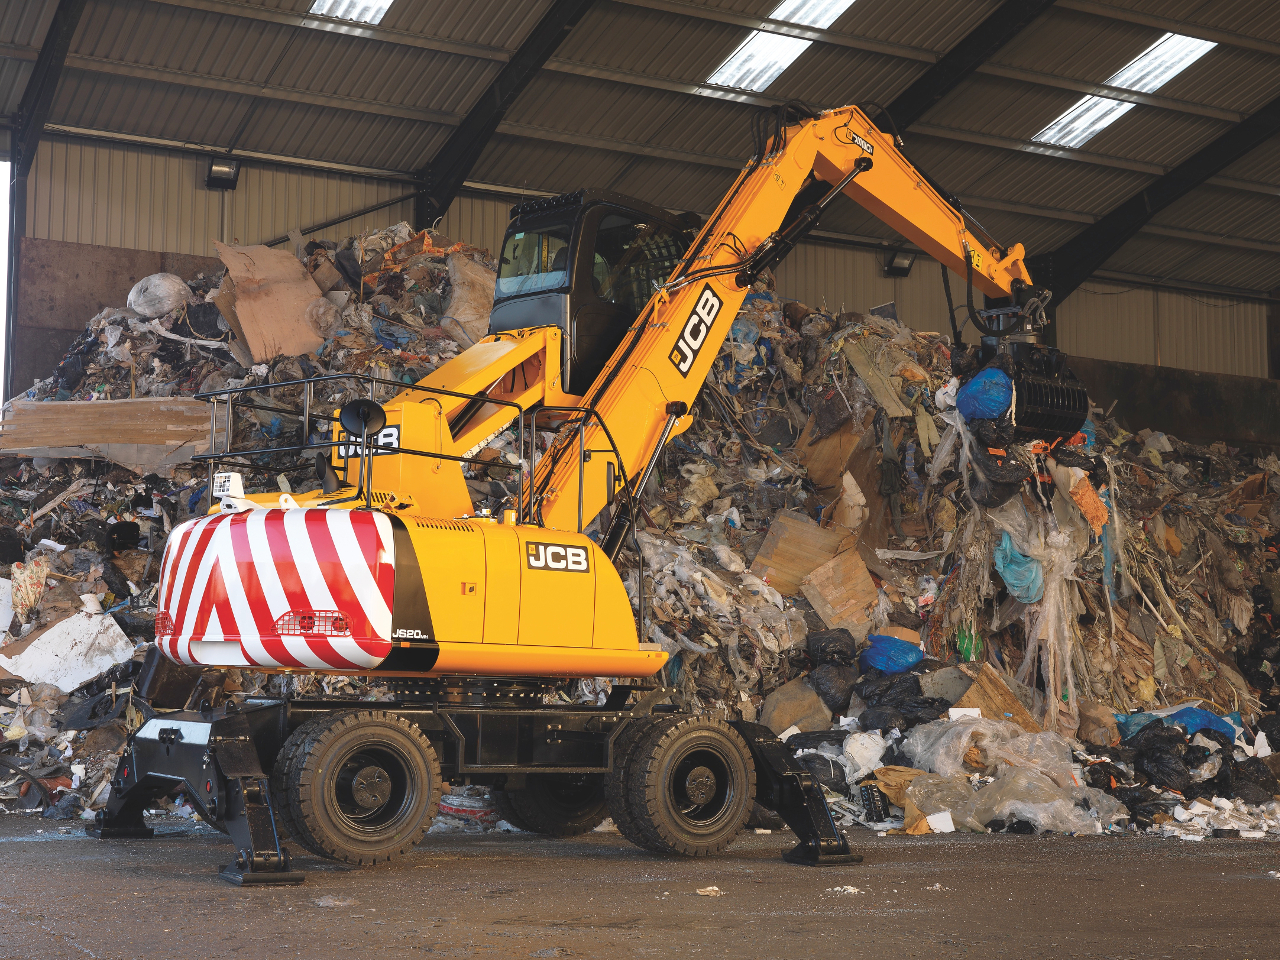 Wastemasters Hire purchase new JCB machines